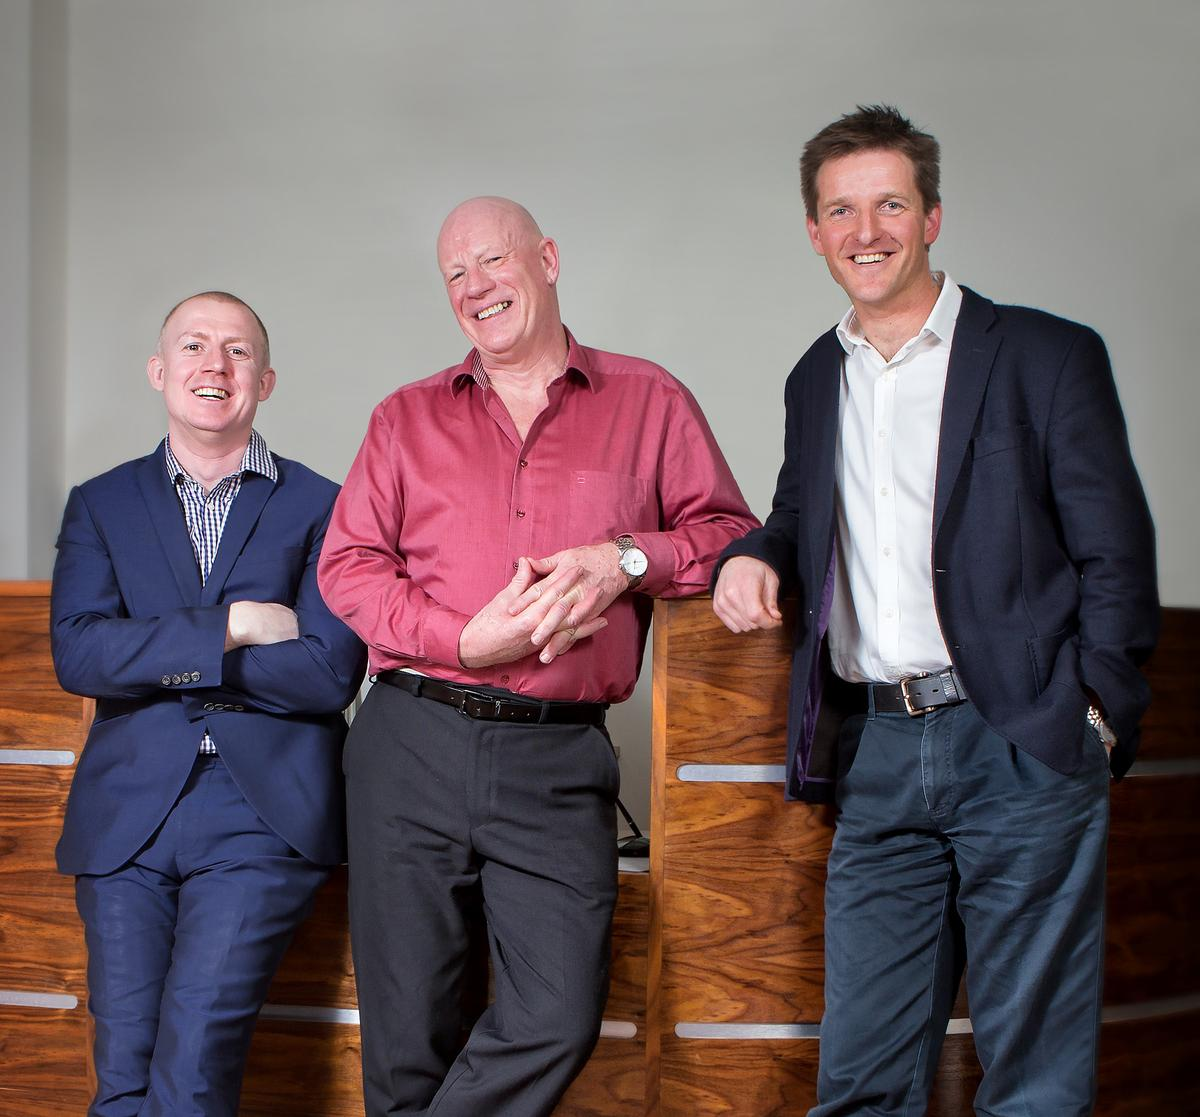 Elliot Walker, commercial director and co-founder, John Holman, director of spa training and Charlie Thompson, operations director and co-founder